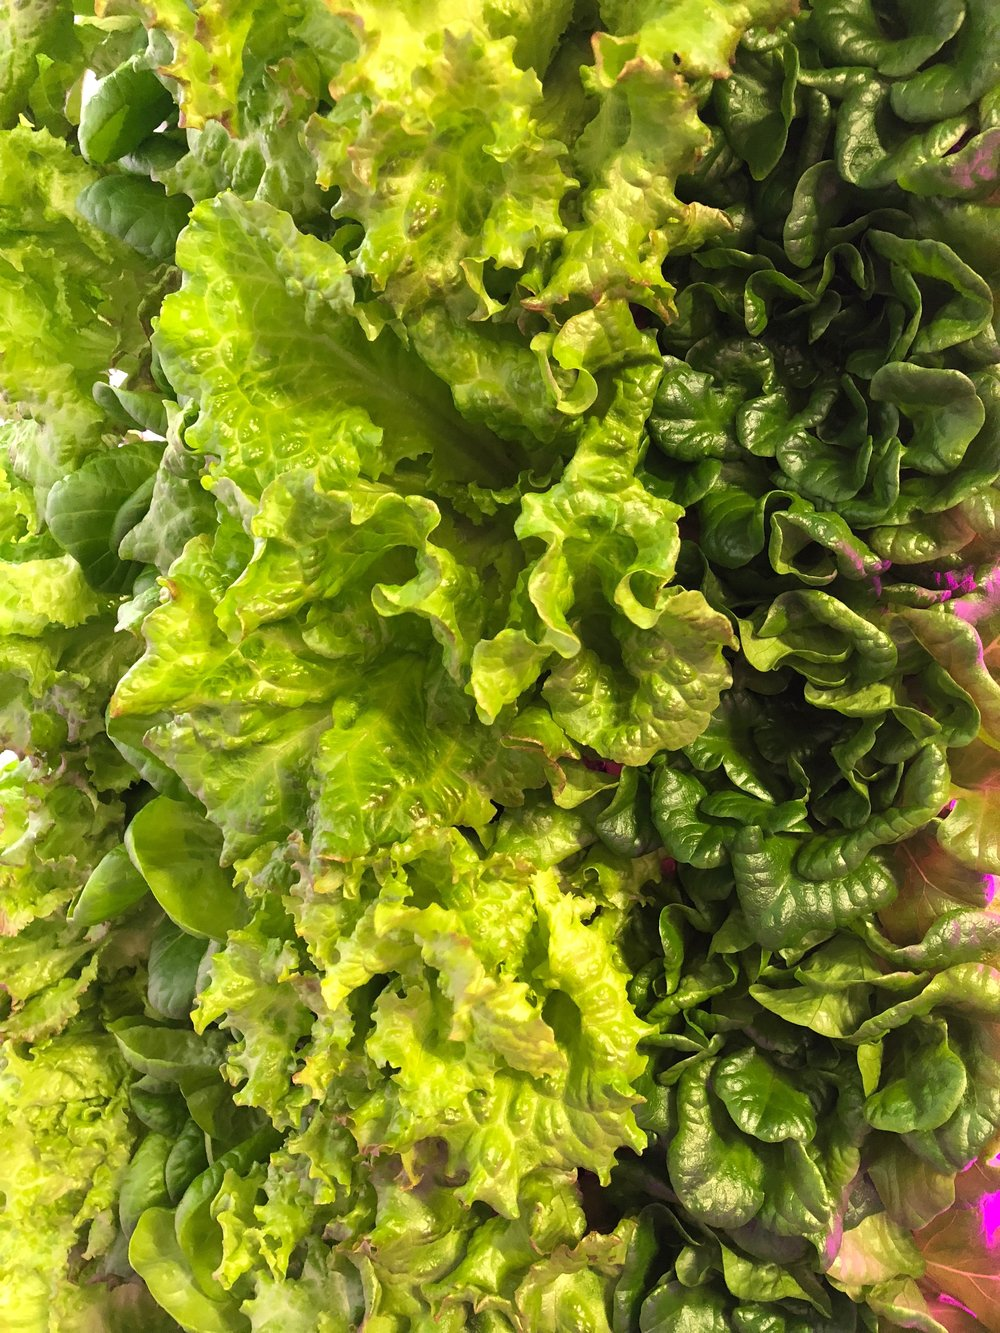 The Rally House container farm grows two acres of a variety of lettuce.